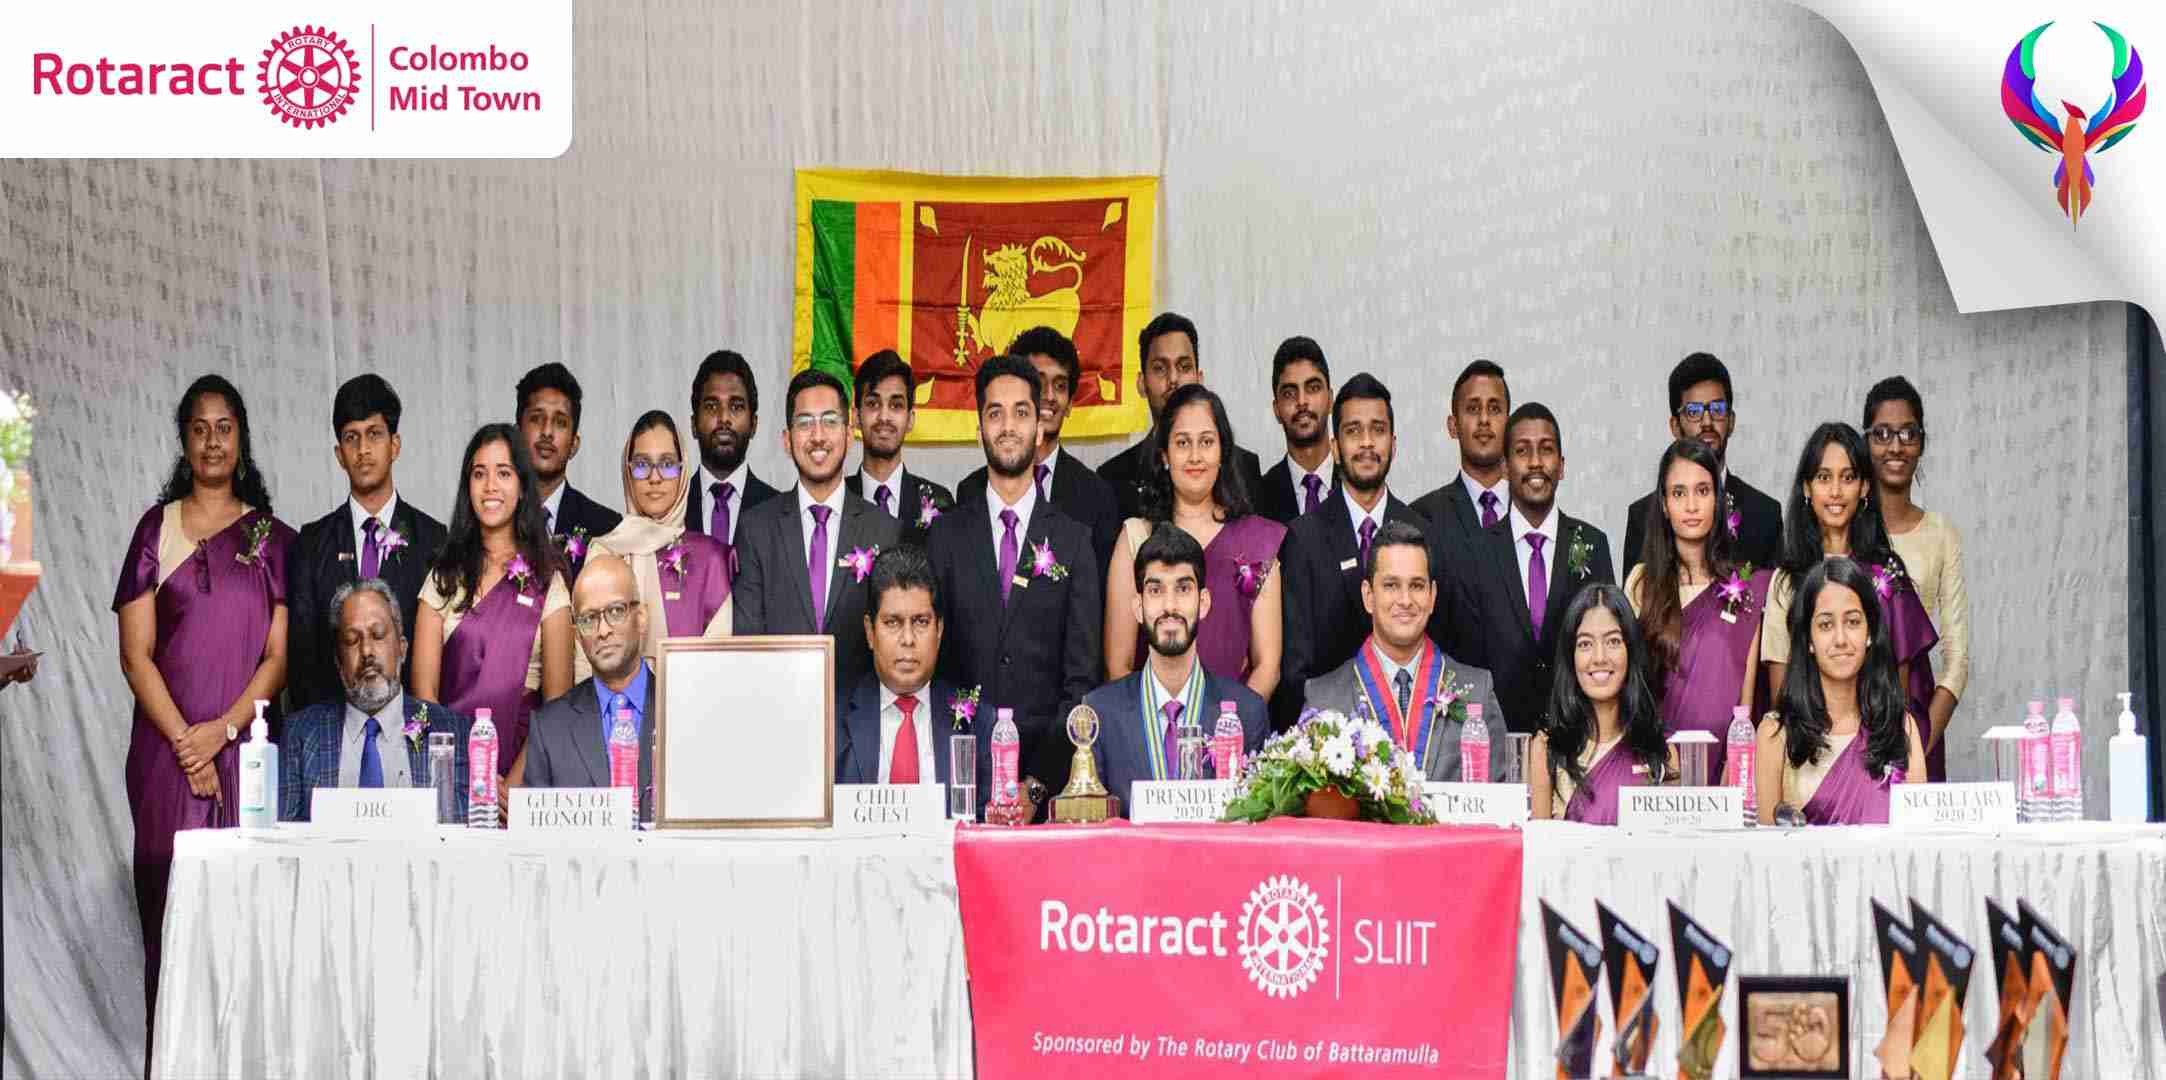 Cover picture for the Rotaract Club of SLITT article